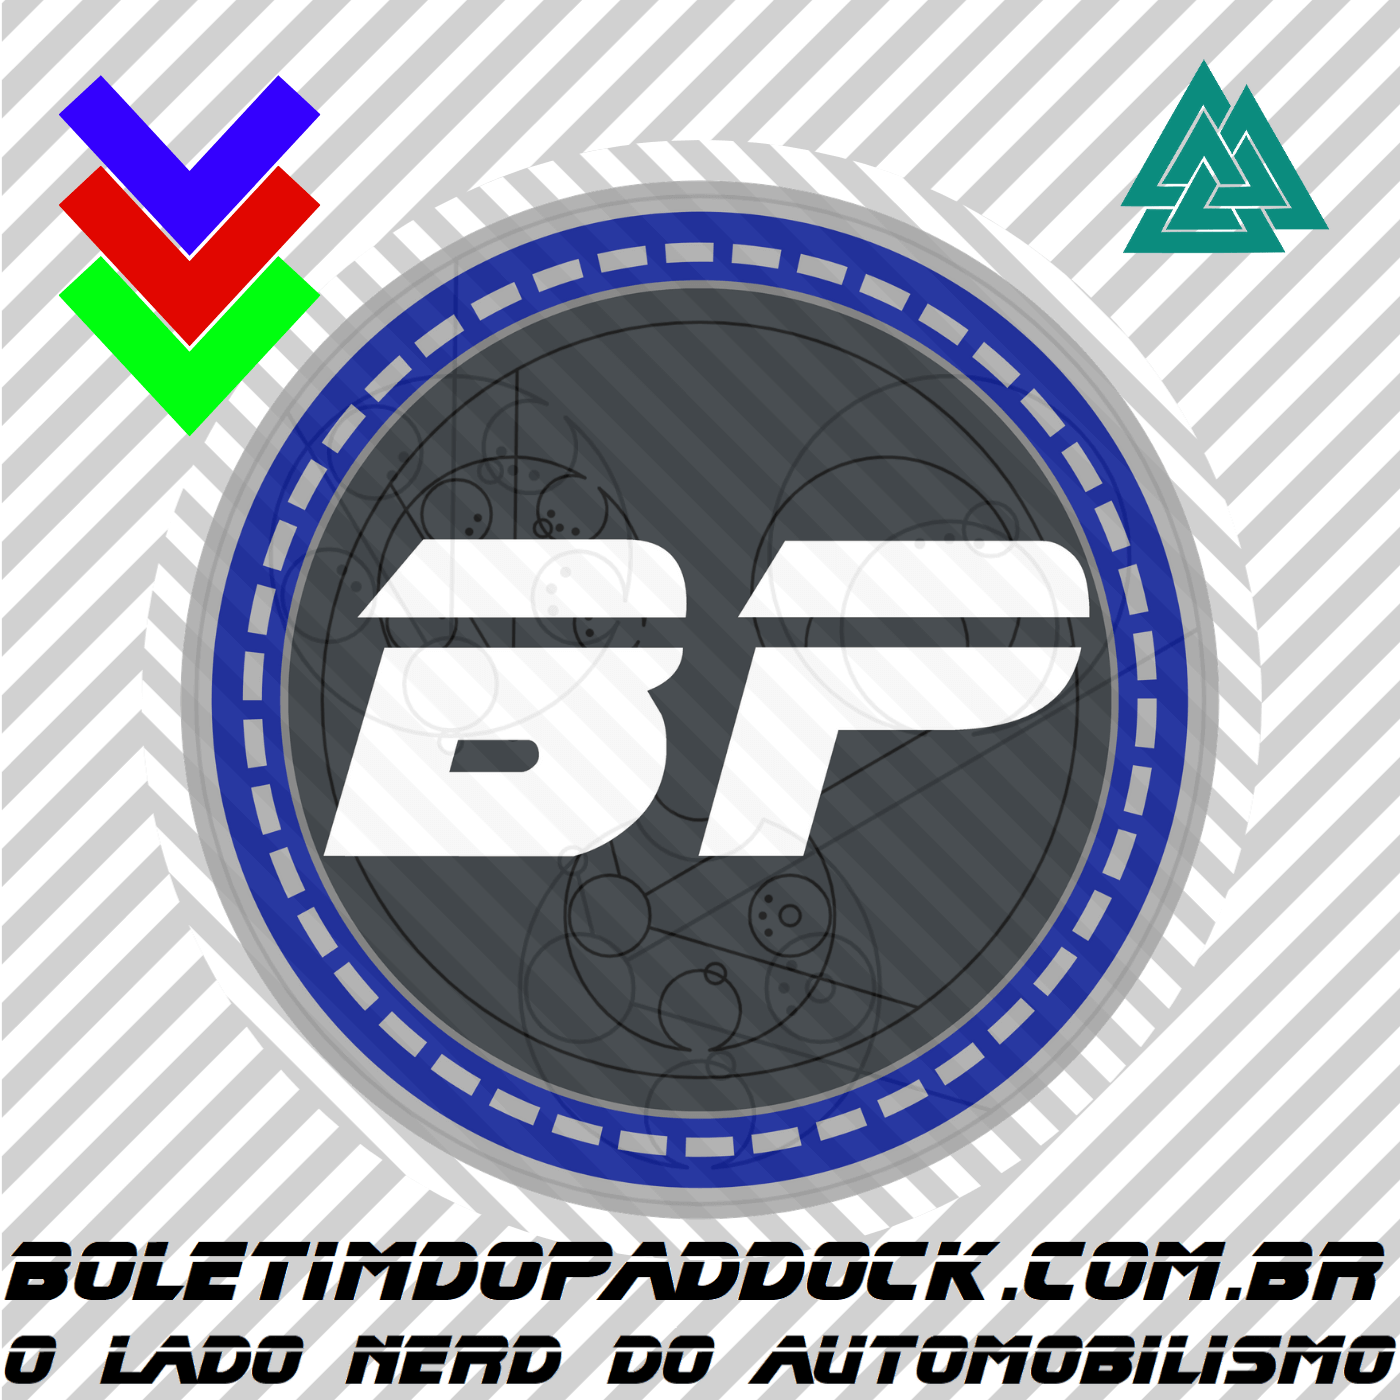 BPCast do Boletim do Paddock